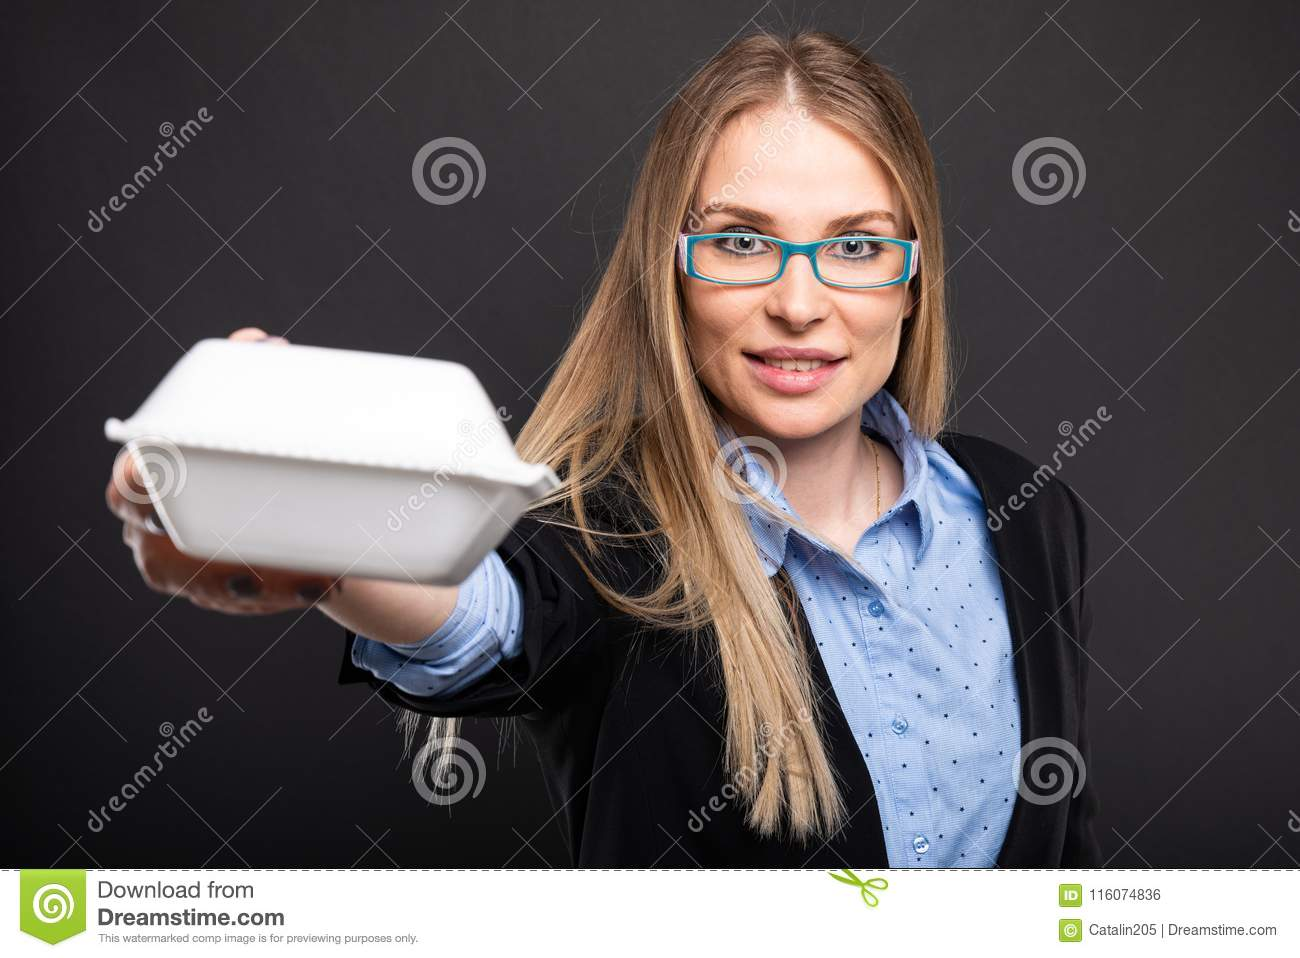 Business Lady Wearing Blue Glasses Offering Lunch Box Stock